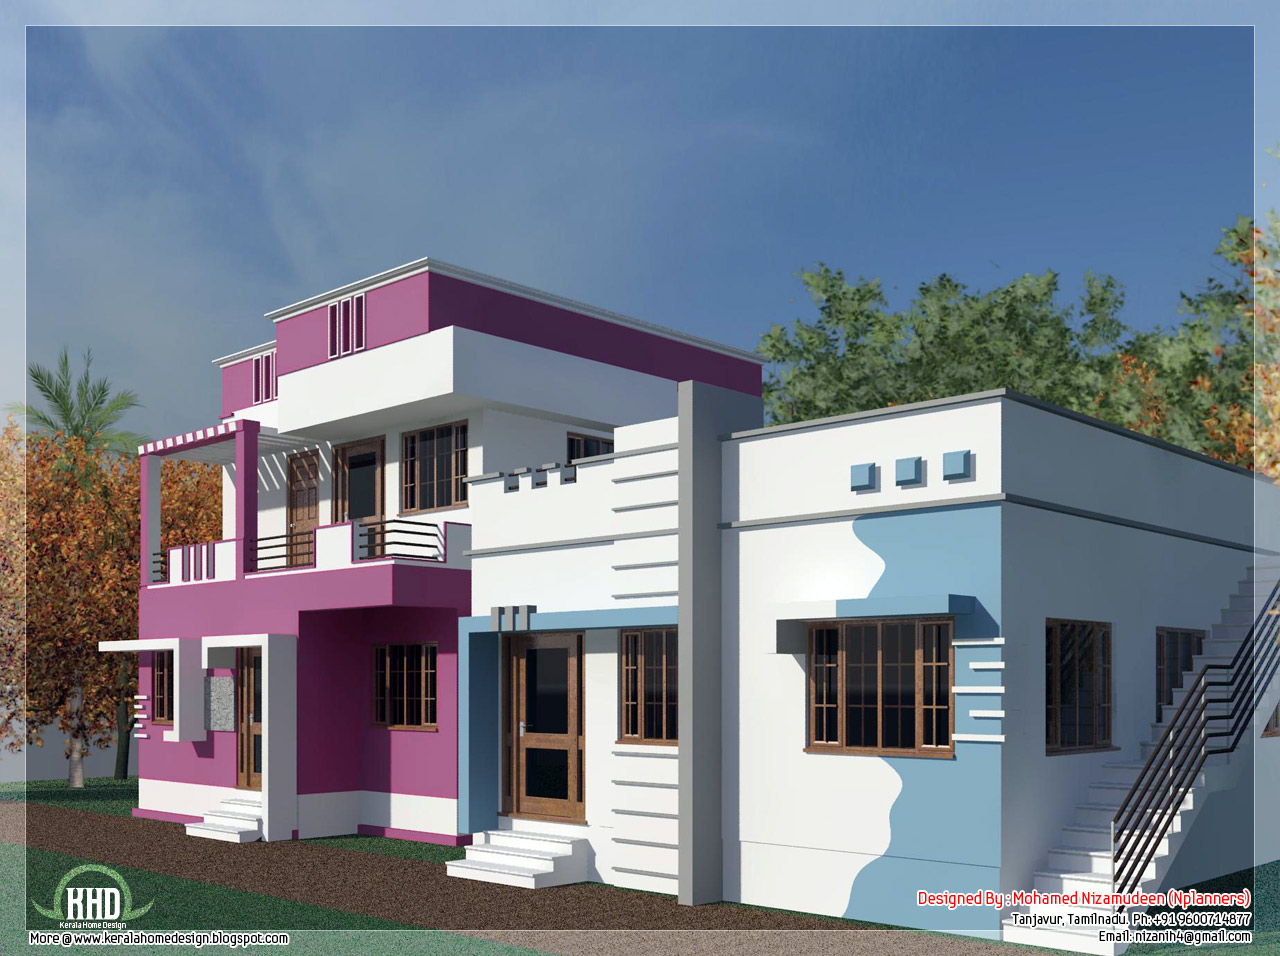 Tamilnadu model home design in 3000 kerala home for Homes models and plans